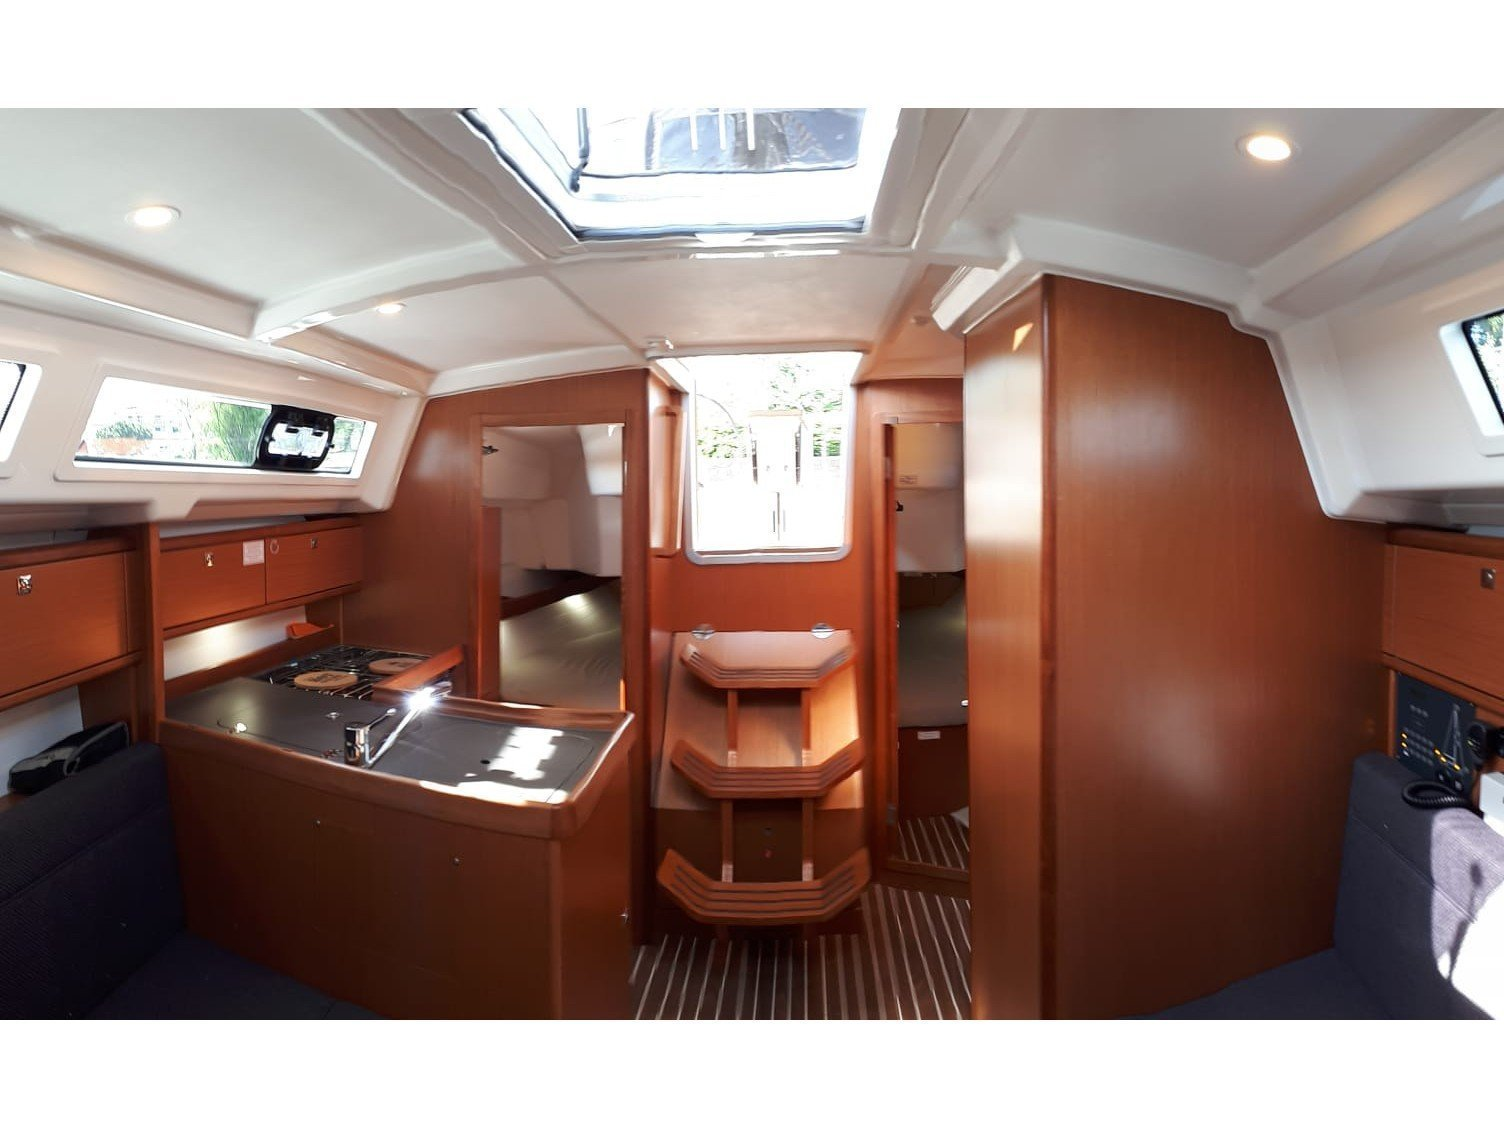 Bavaria 34 Cruiser (Joker) Interior image - 1